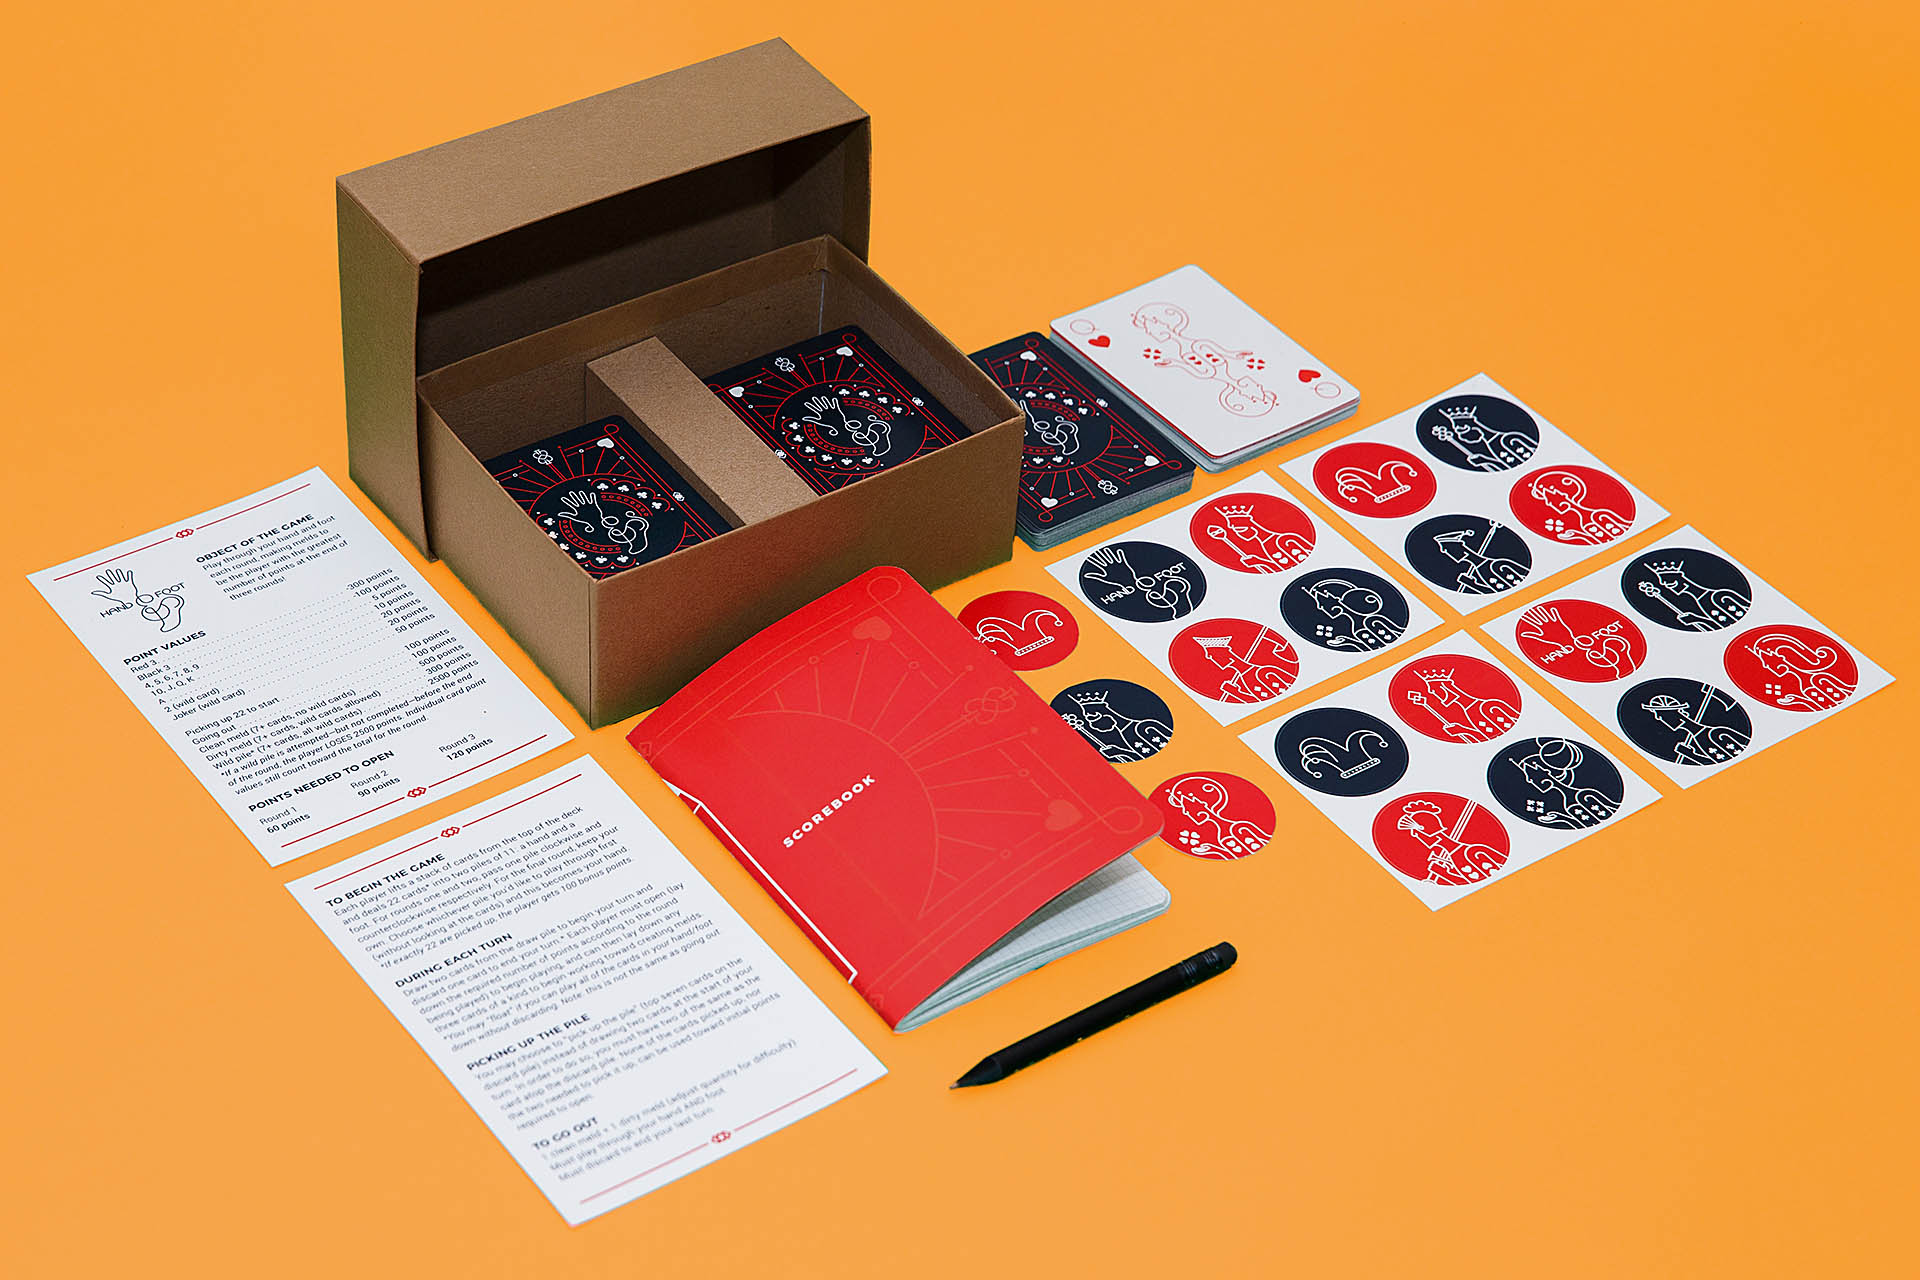 Box of cards, round black and red stickers, red notepad, game rules, and mini black pencil on orange background